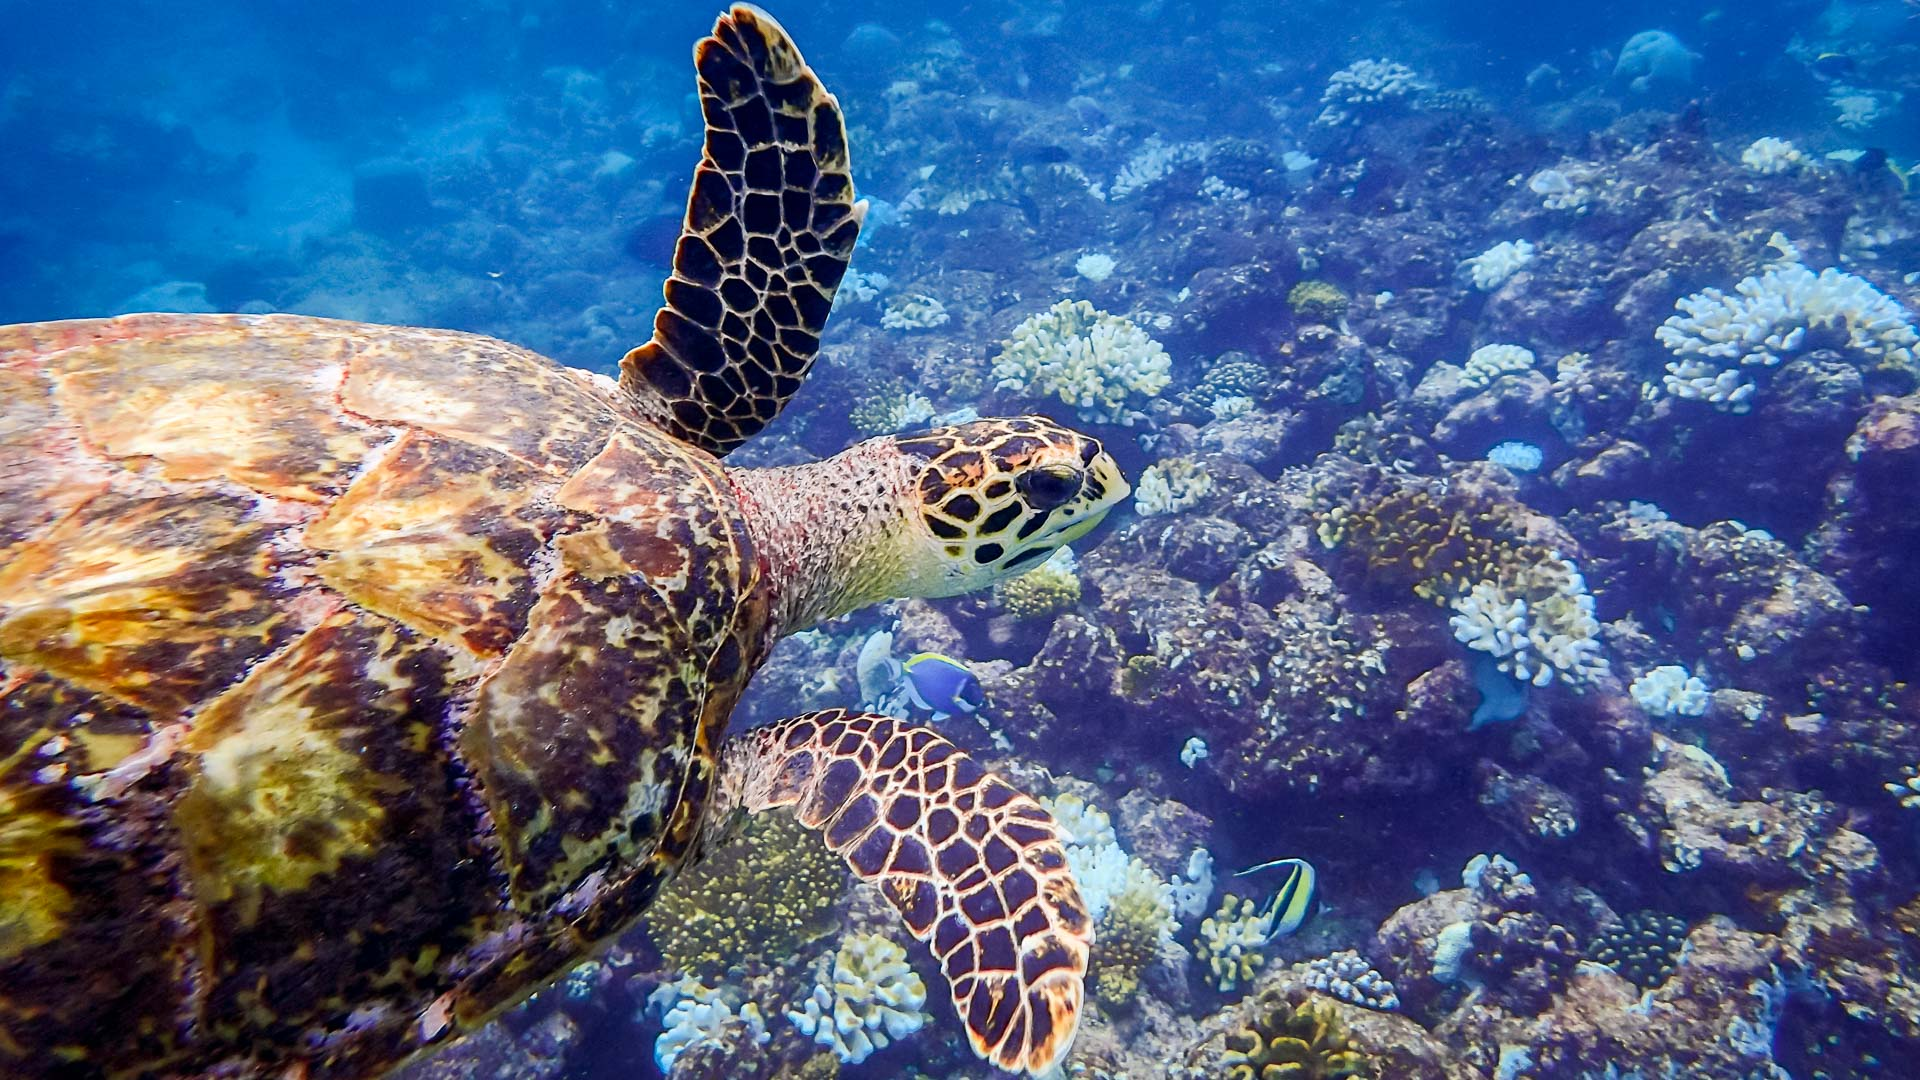 MSTIP - wild Hawksbill on the reef, Marine Savers Maldives